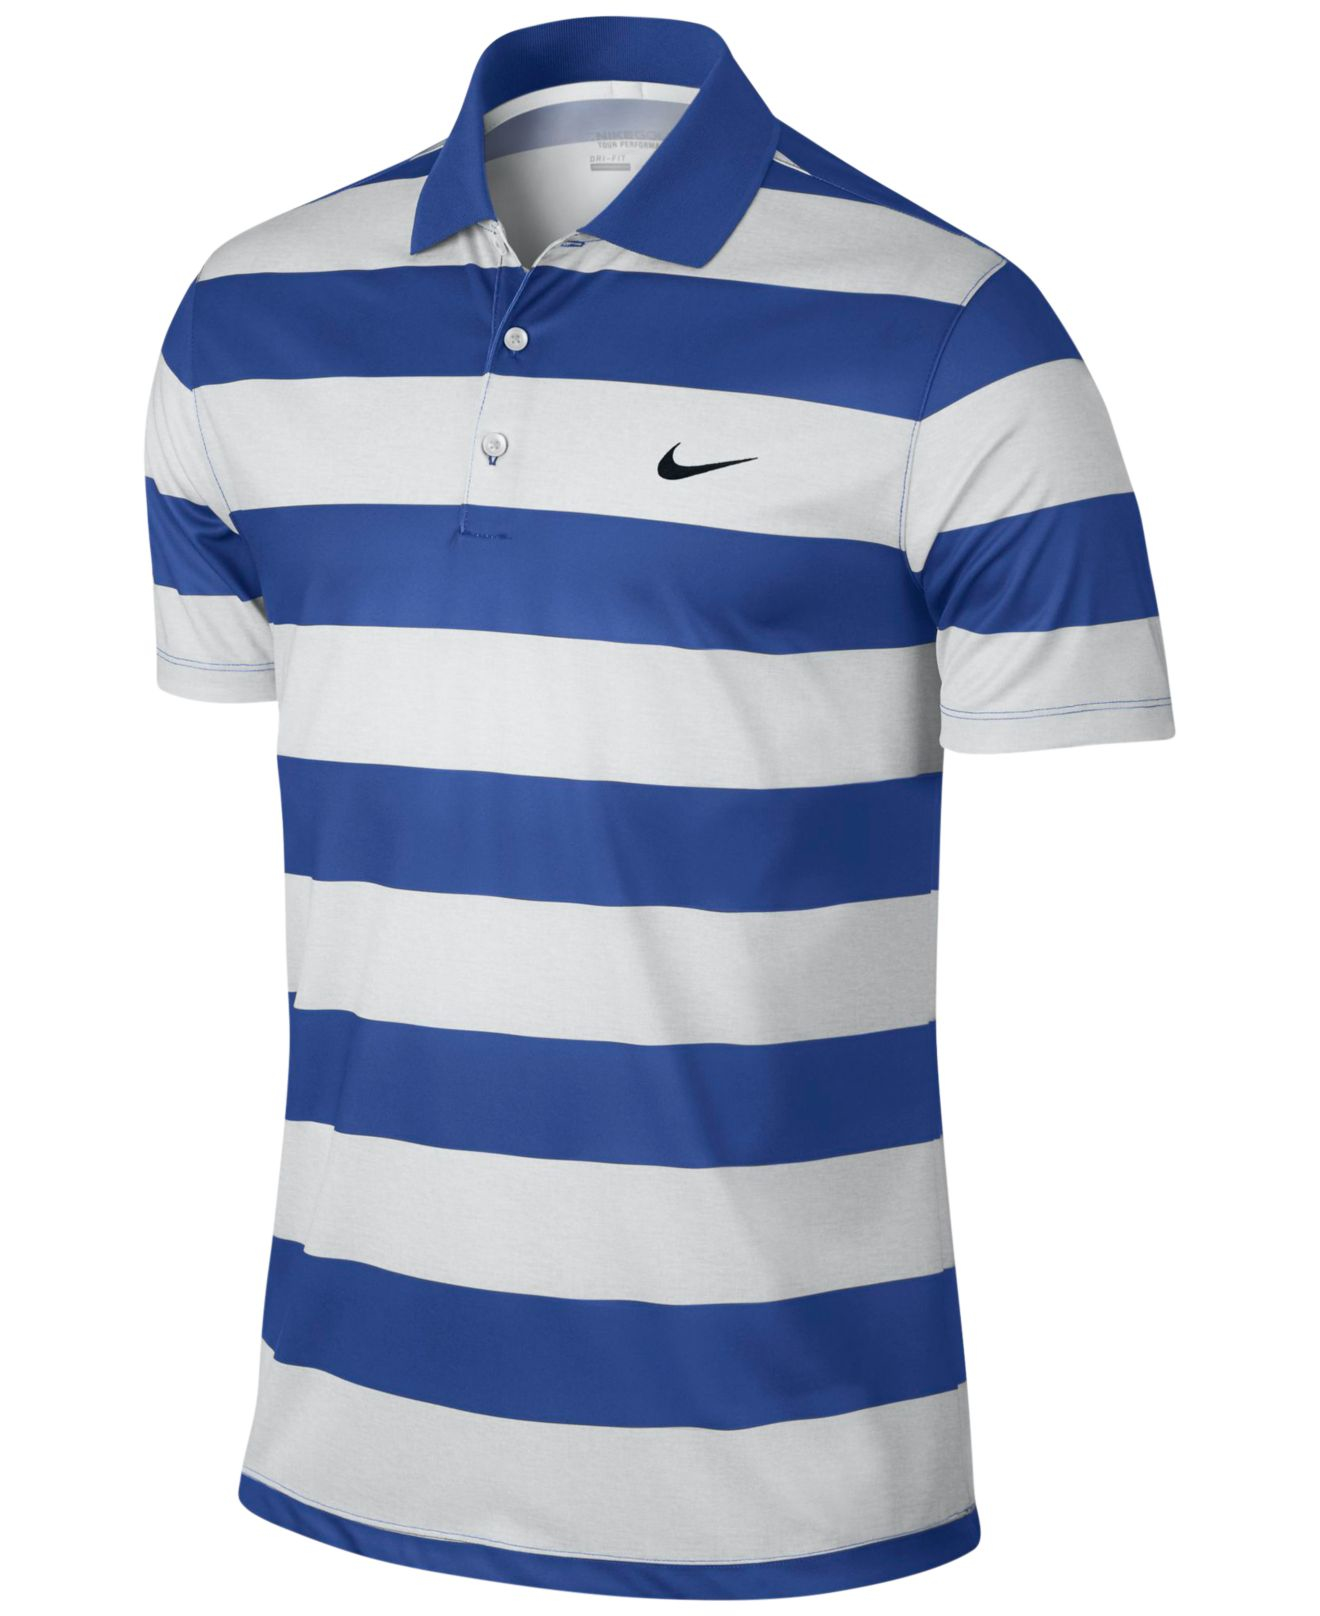 7a1e0b3e93 Nike Golf Dri Fit Shirt – EDGE Engineering and Consulting Limited